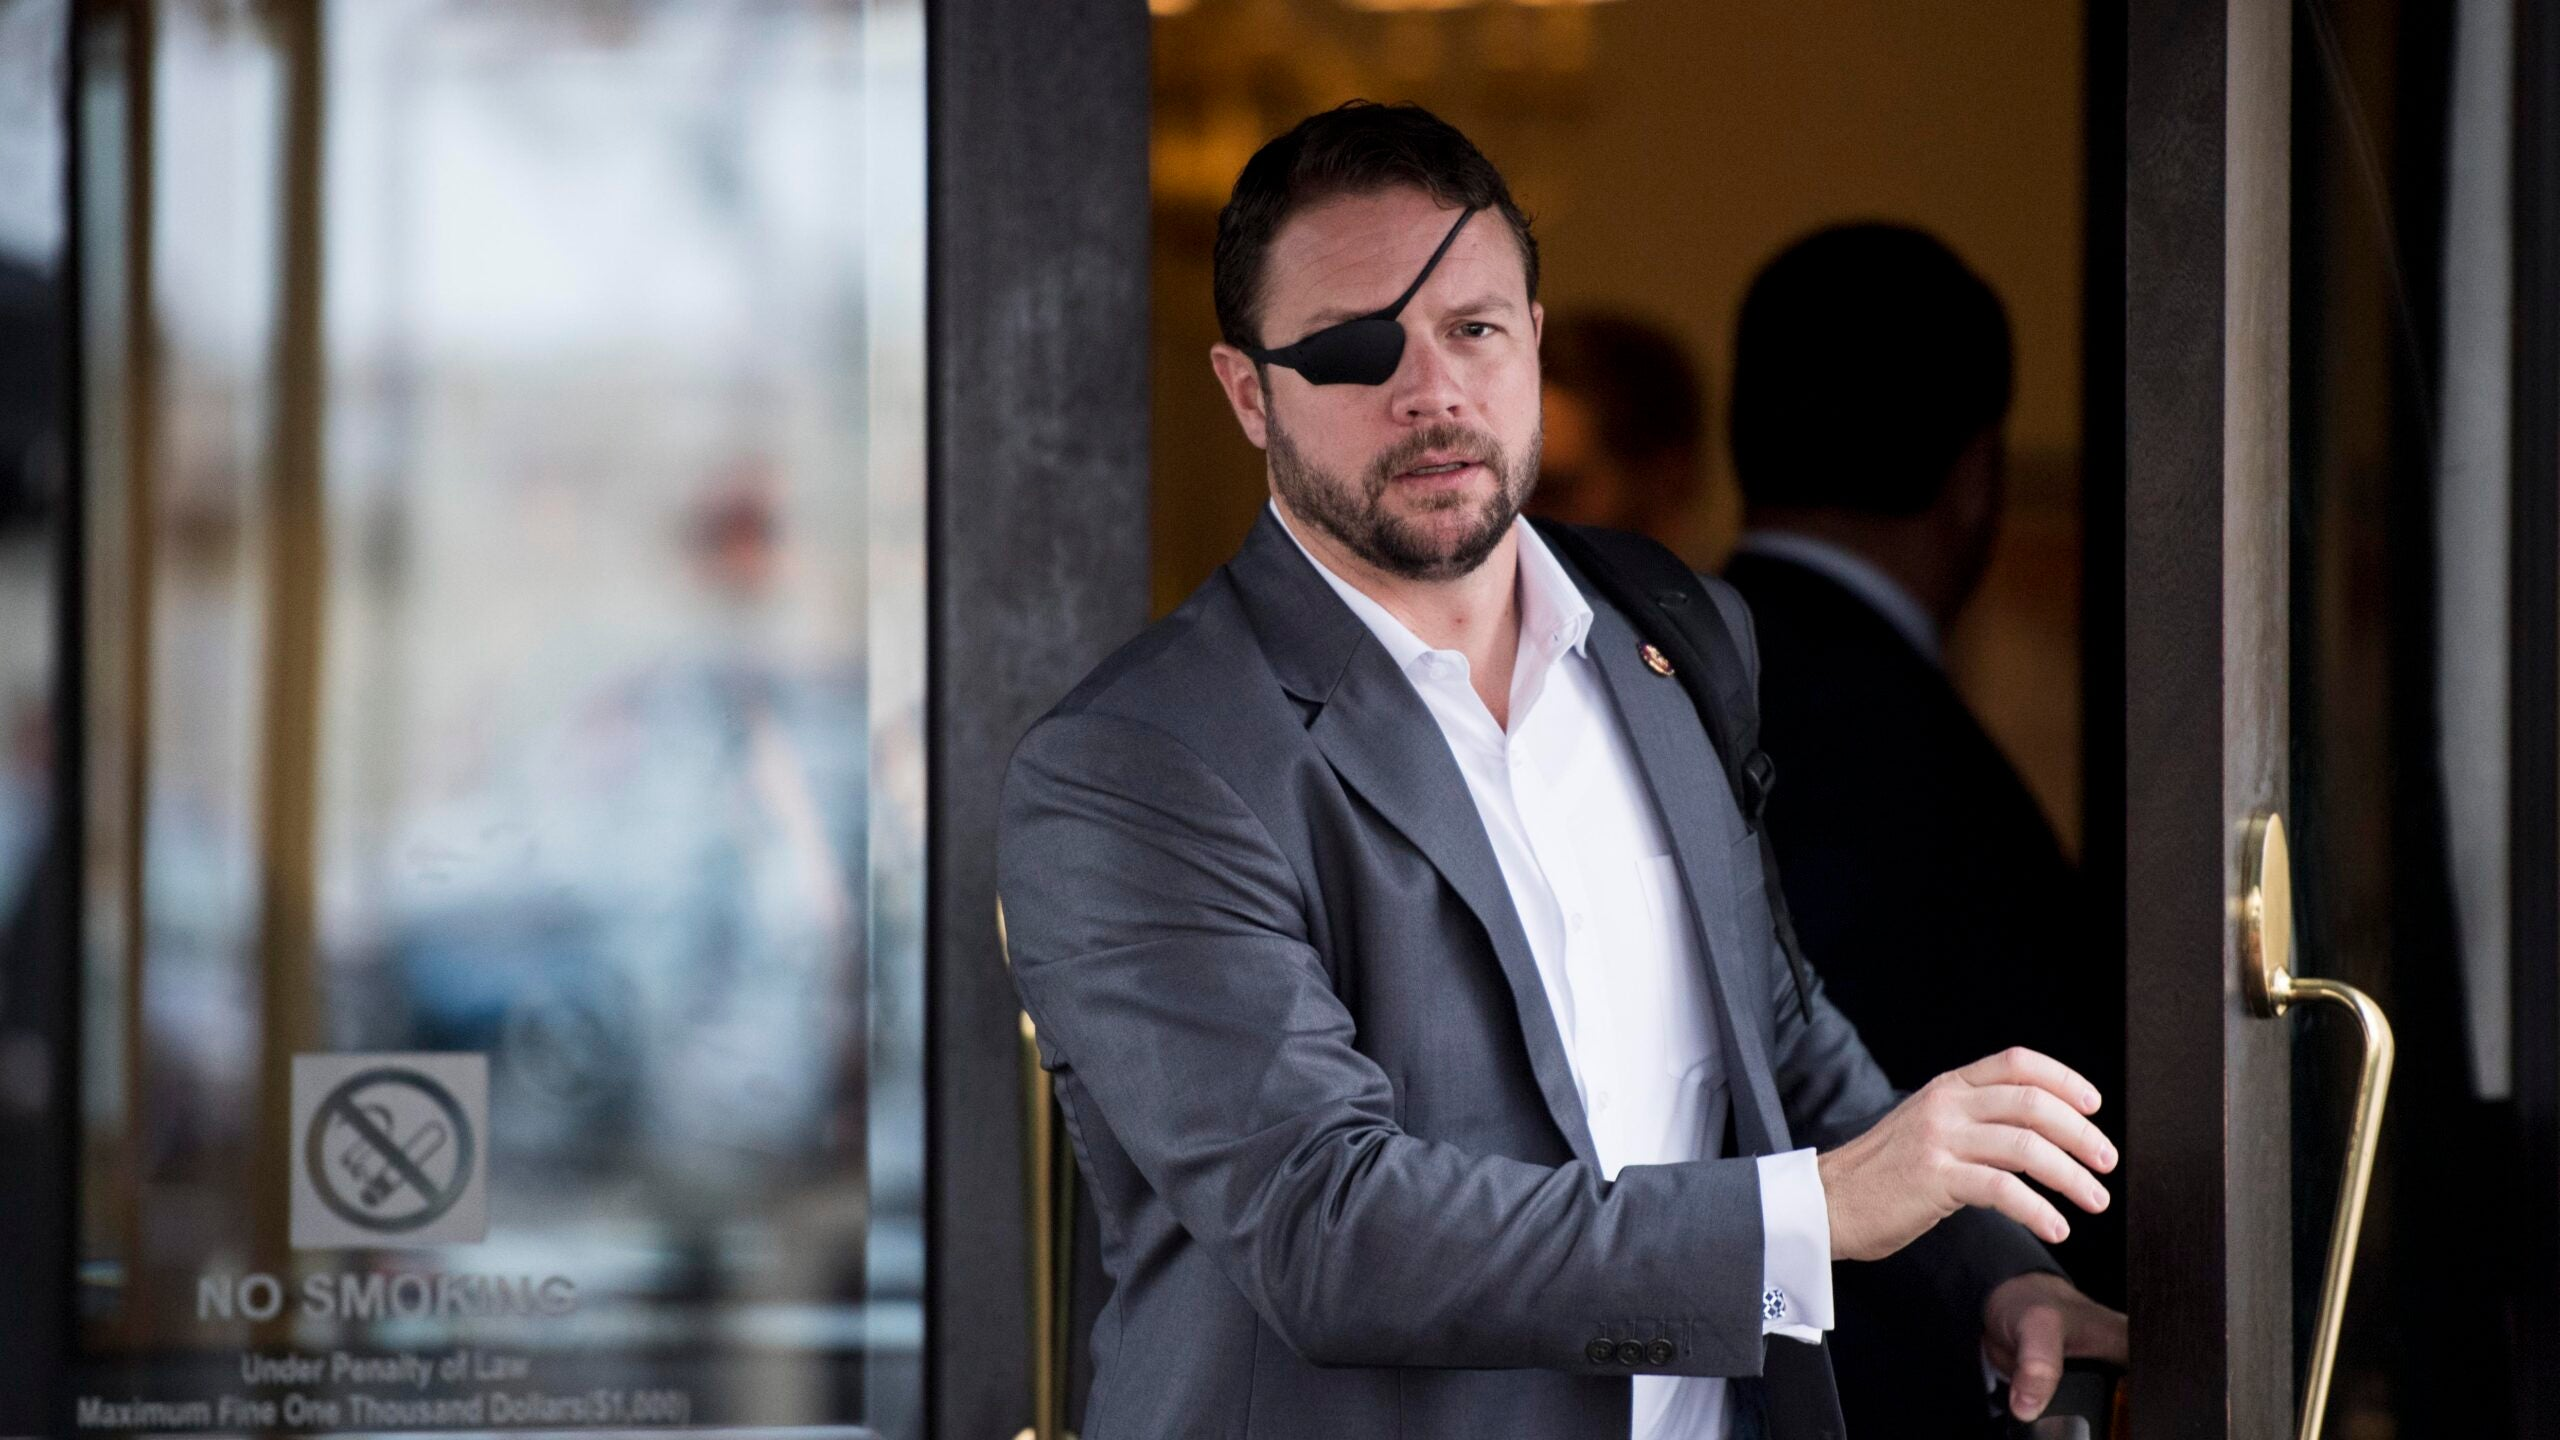 Vet groups call on Congress to investigate Dan Crenshaw's alleged smearing of a sexual assault victim